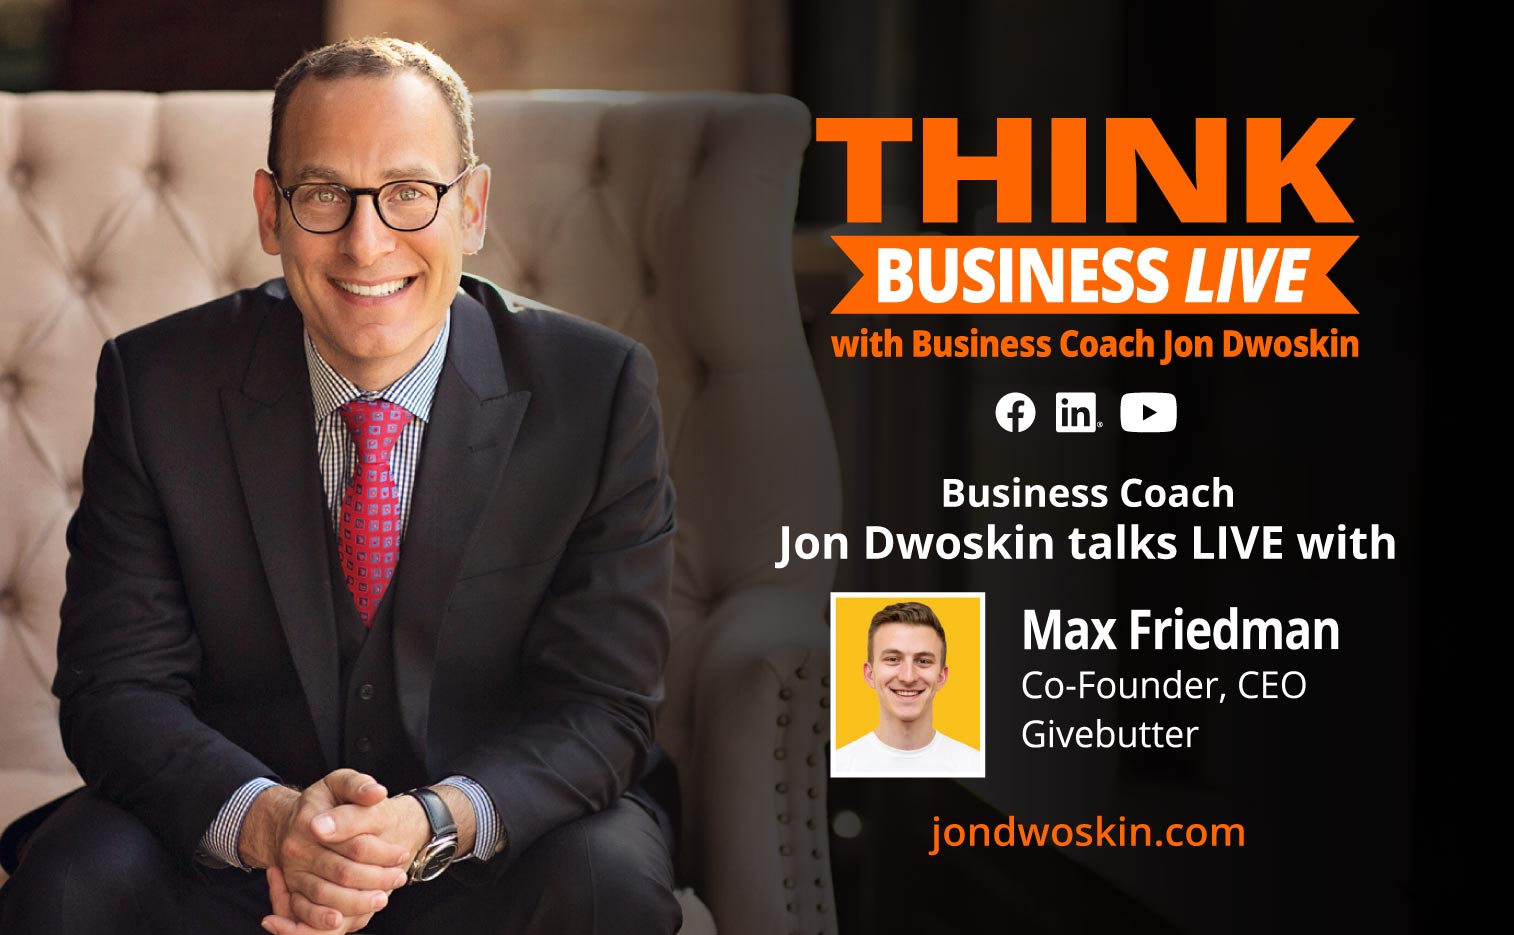 THINK Business LIVE: Jon Dwoskin Talks with Max Friedman